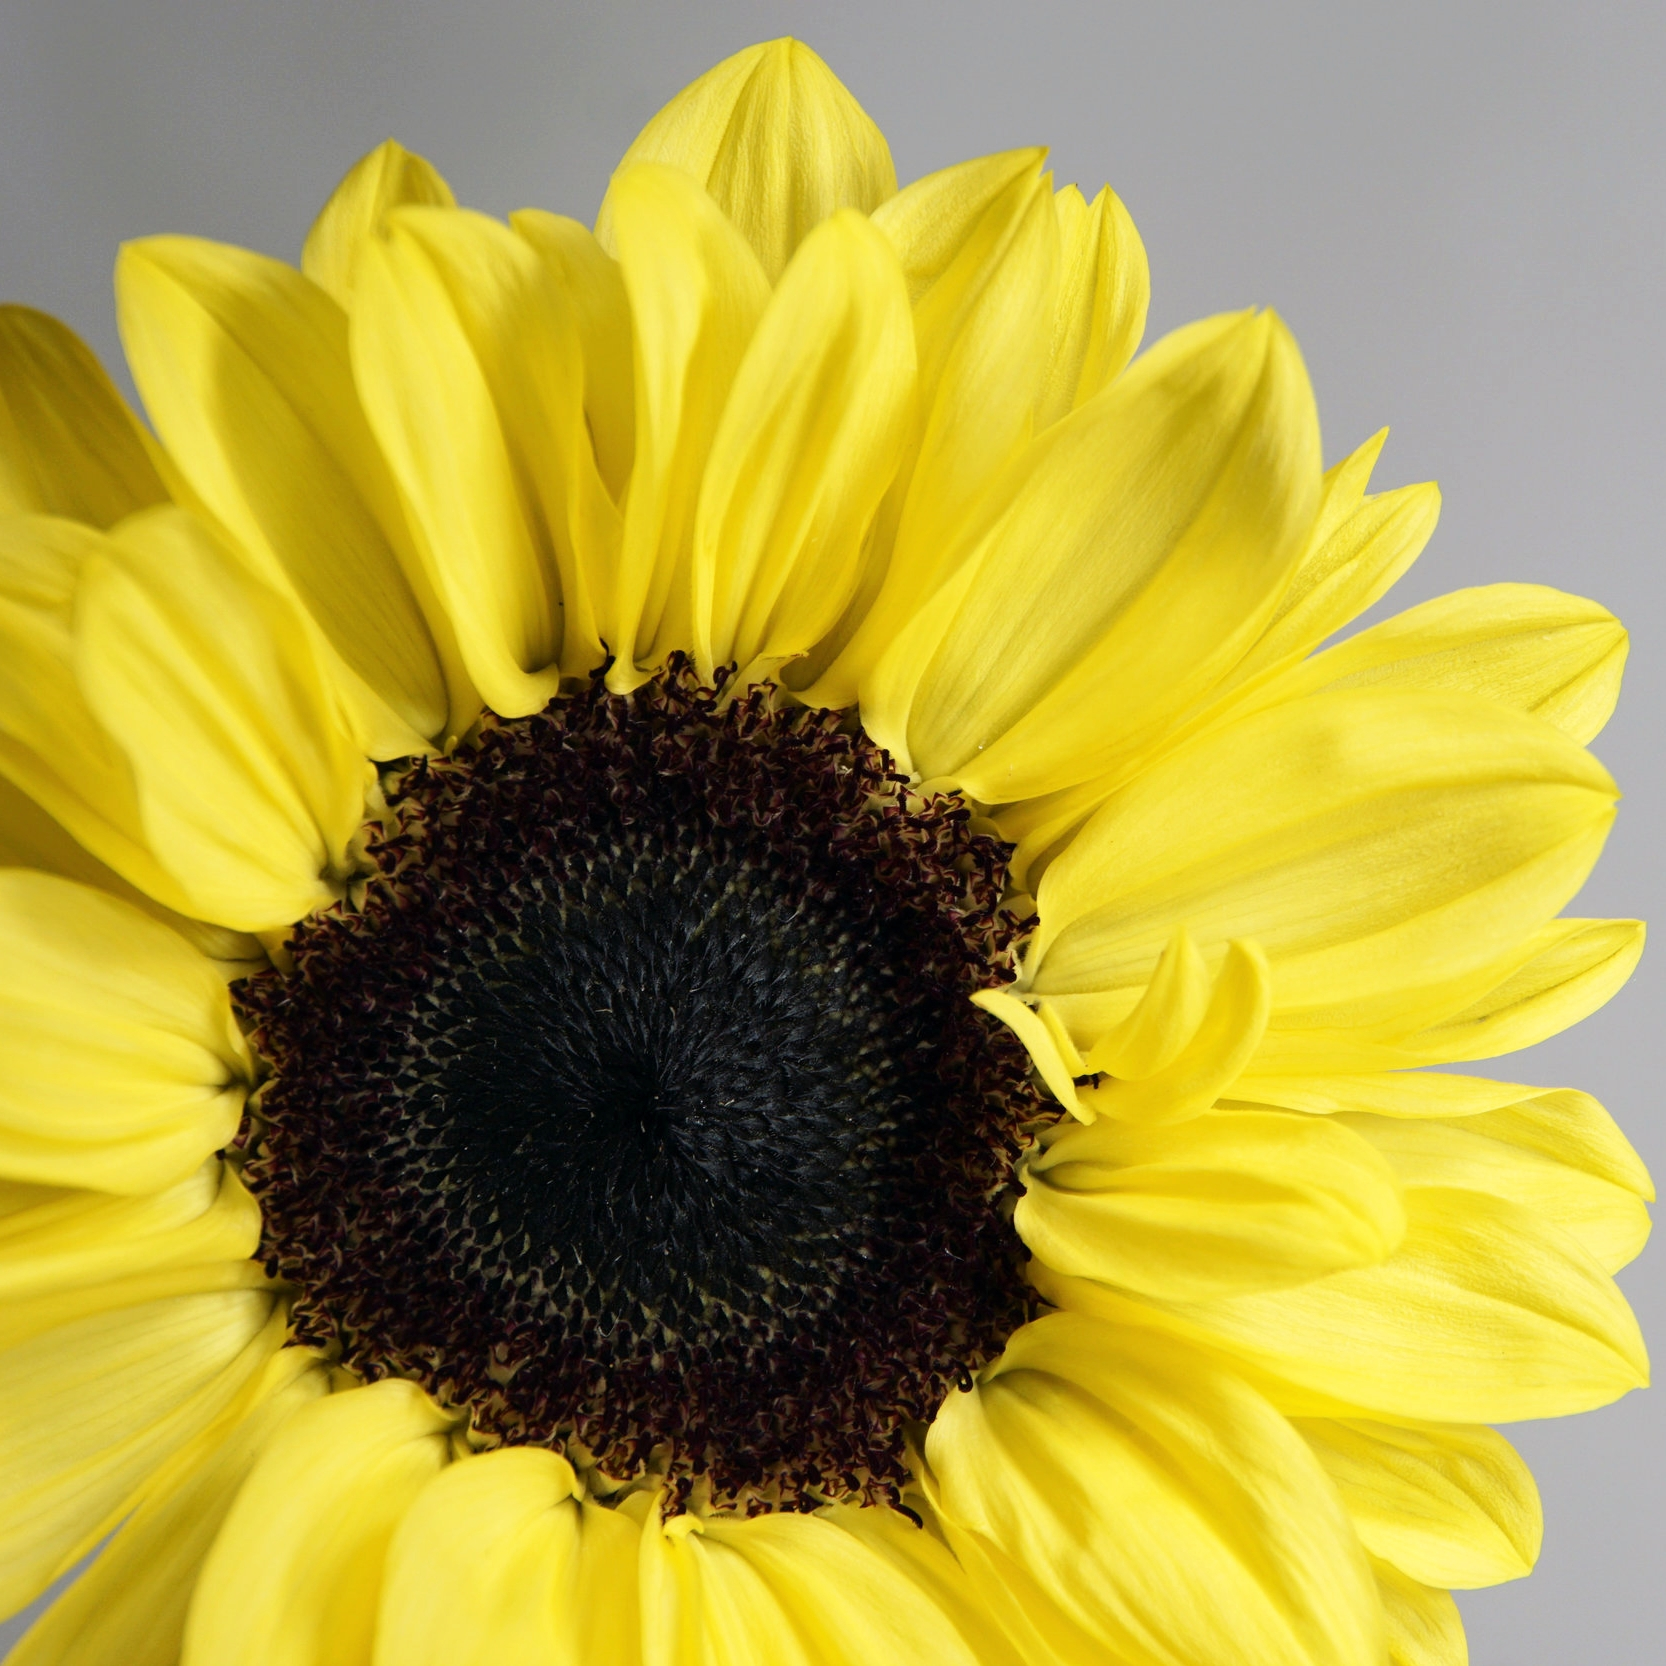 Bright Yellow Sunflower.jpg